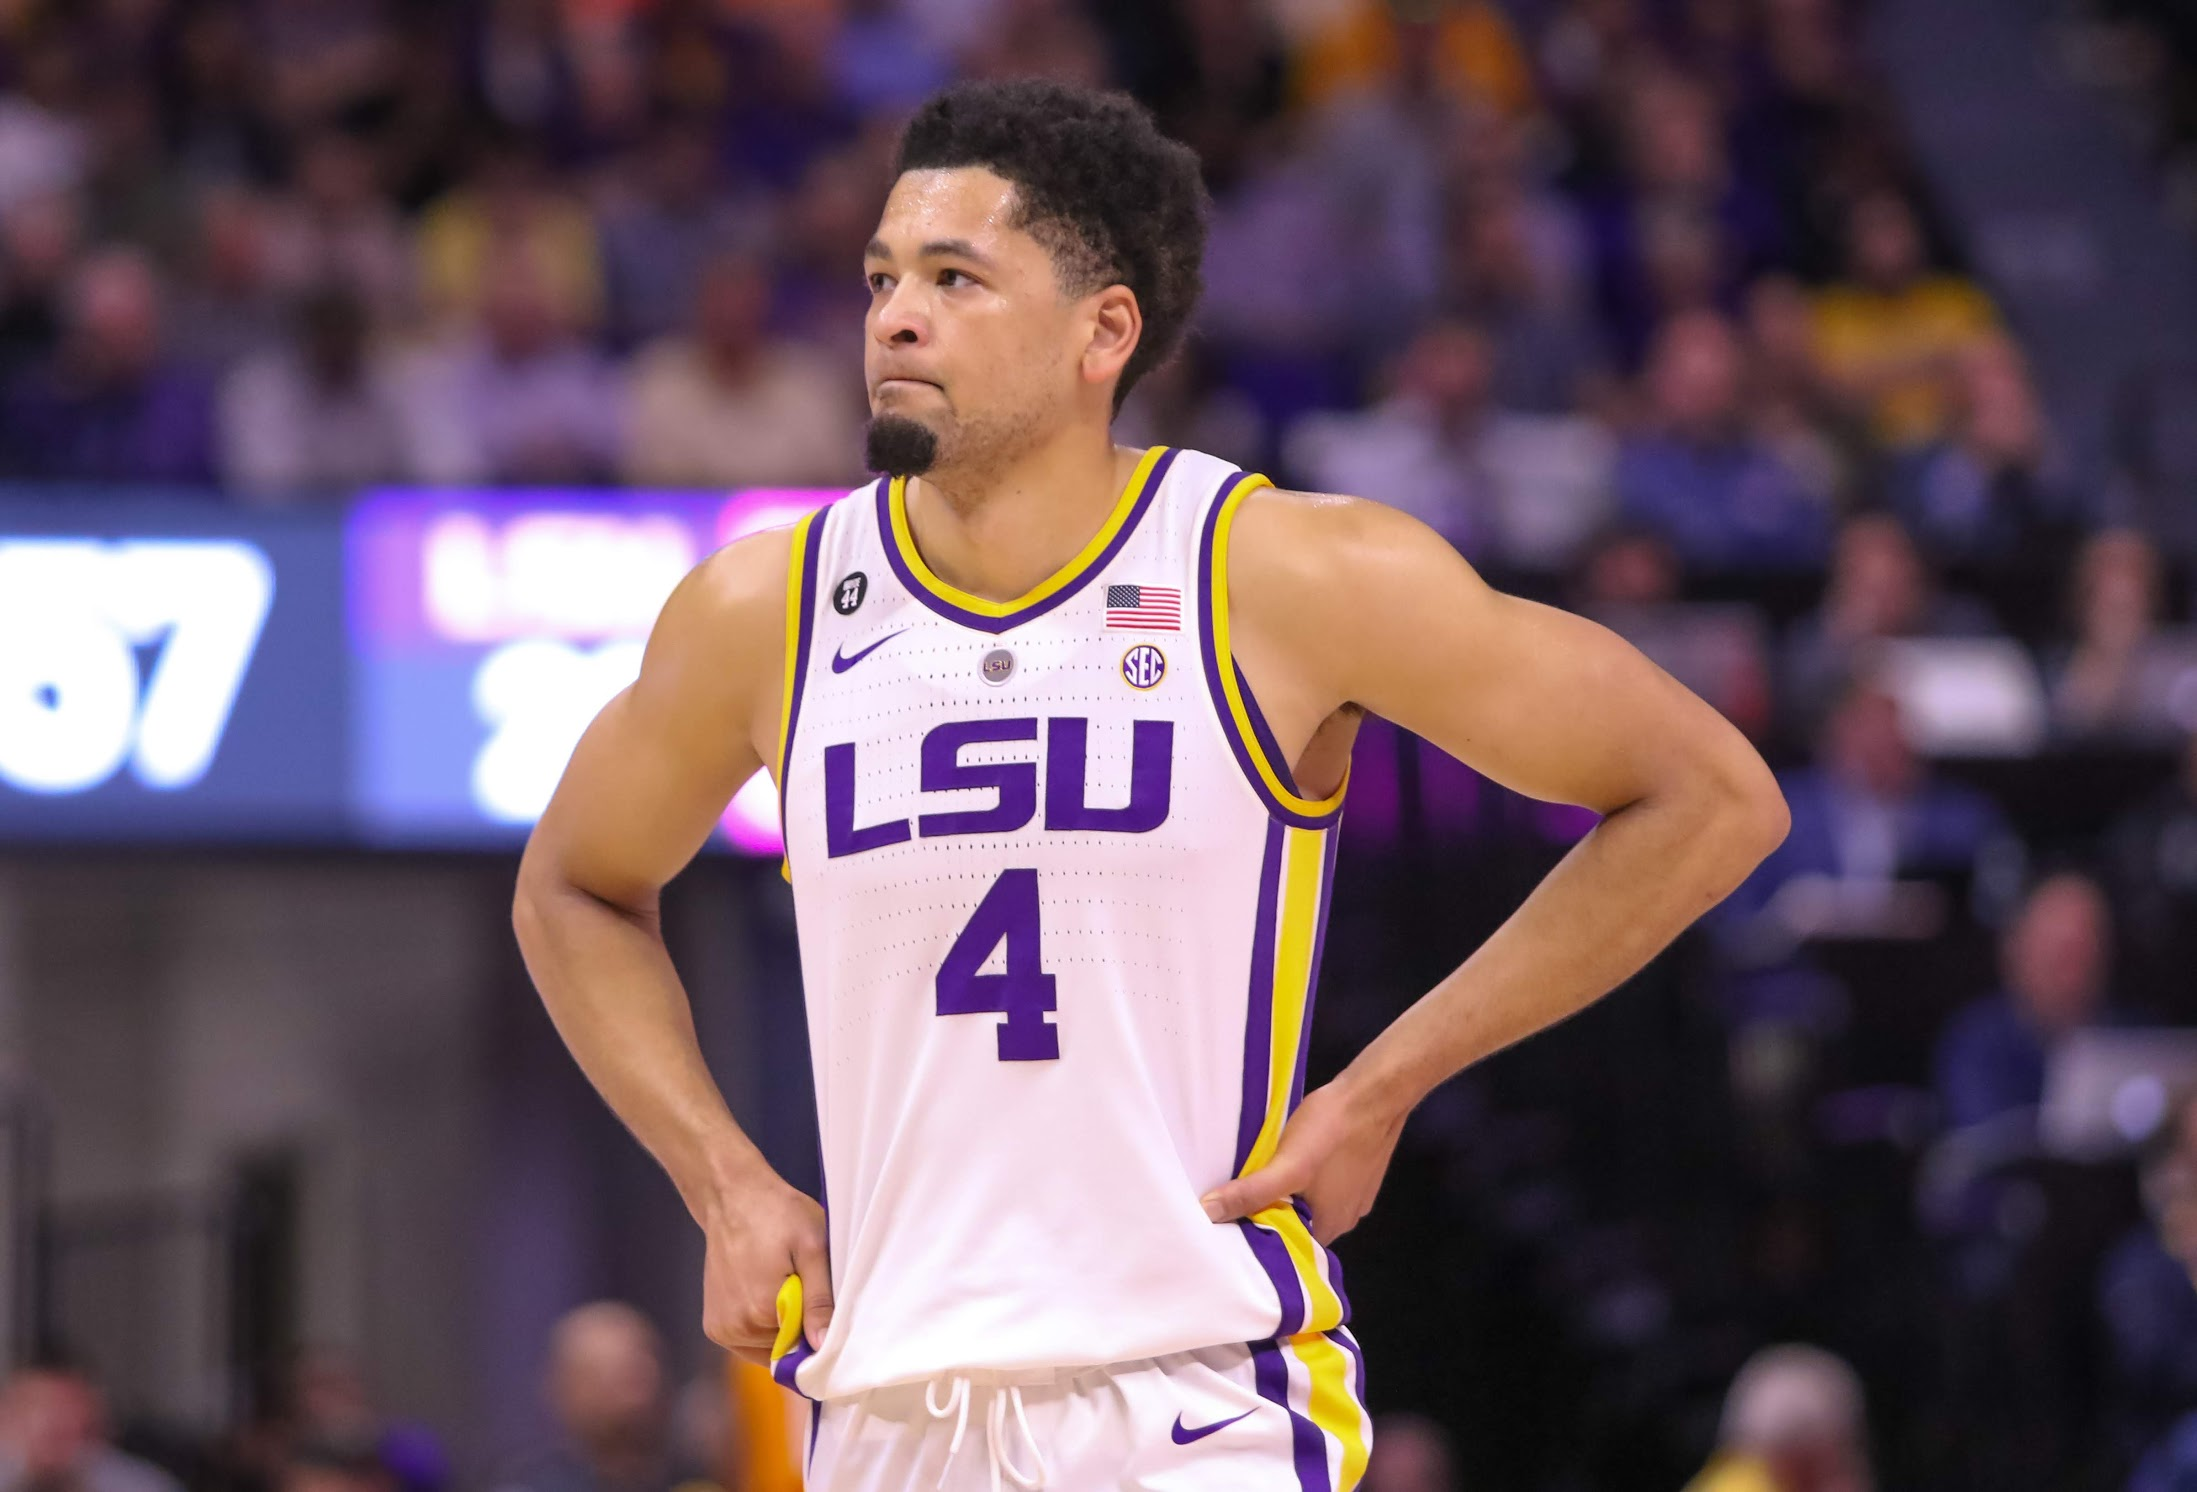 Pregame Thread: LSU seeking revenge vs. Gators